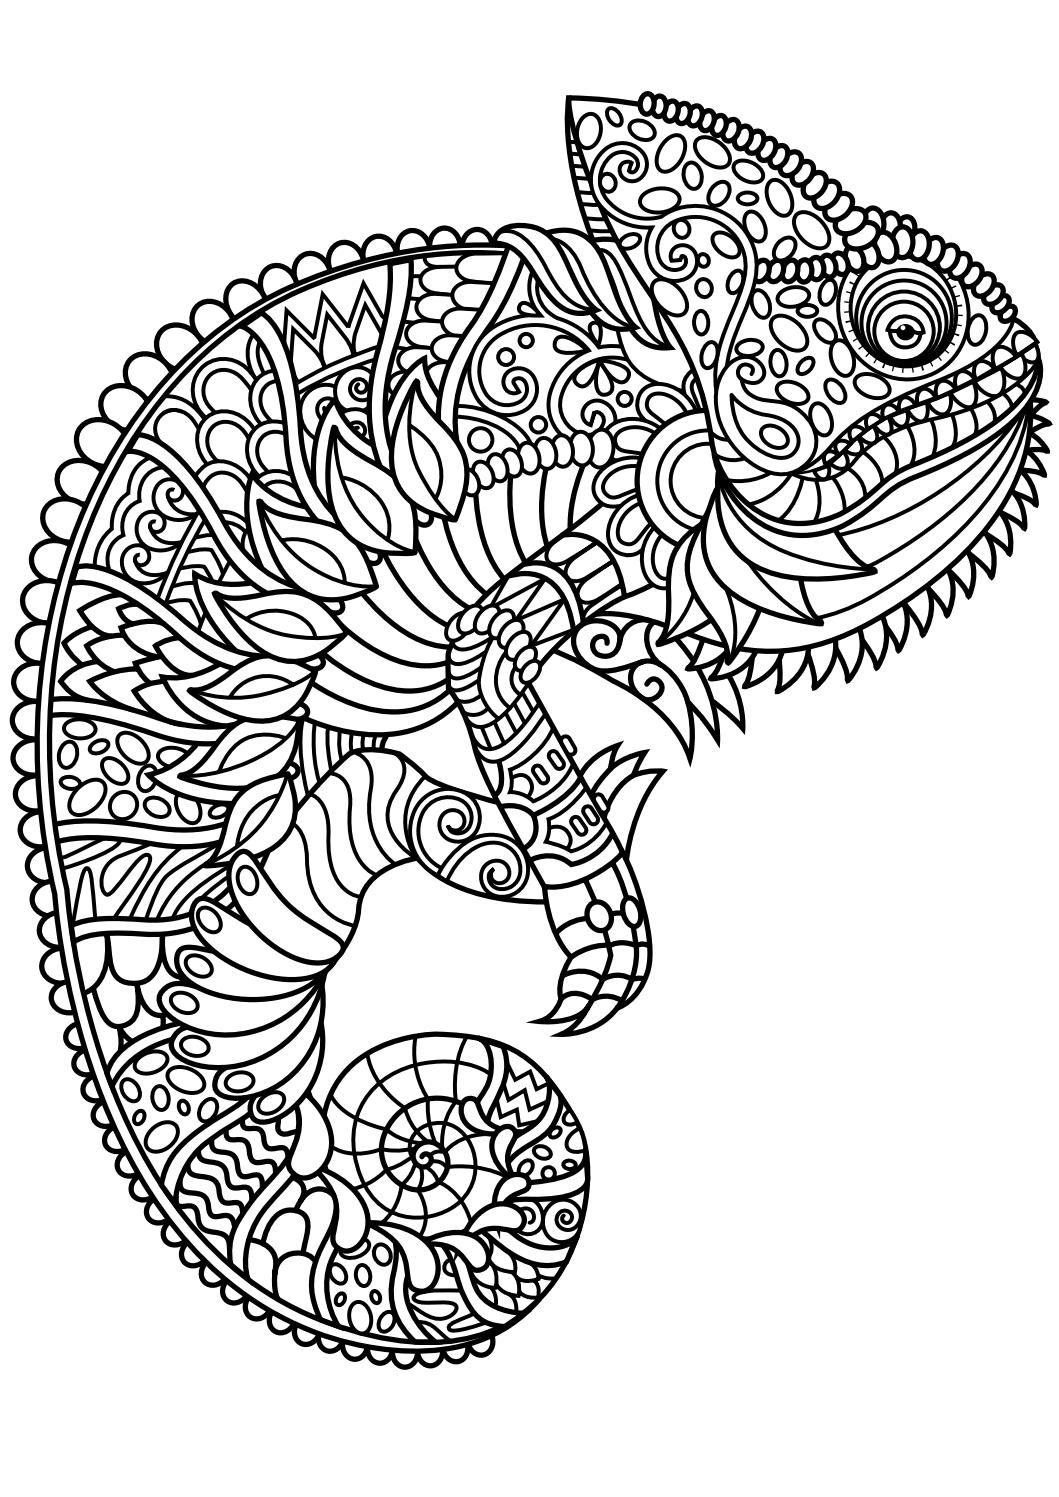 Animal Coloring Pages Pdf Horse PagesColouring PagesColoring SheetsColoring BooksFree Adult